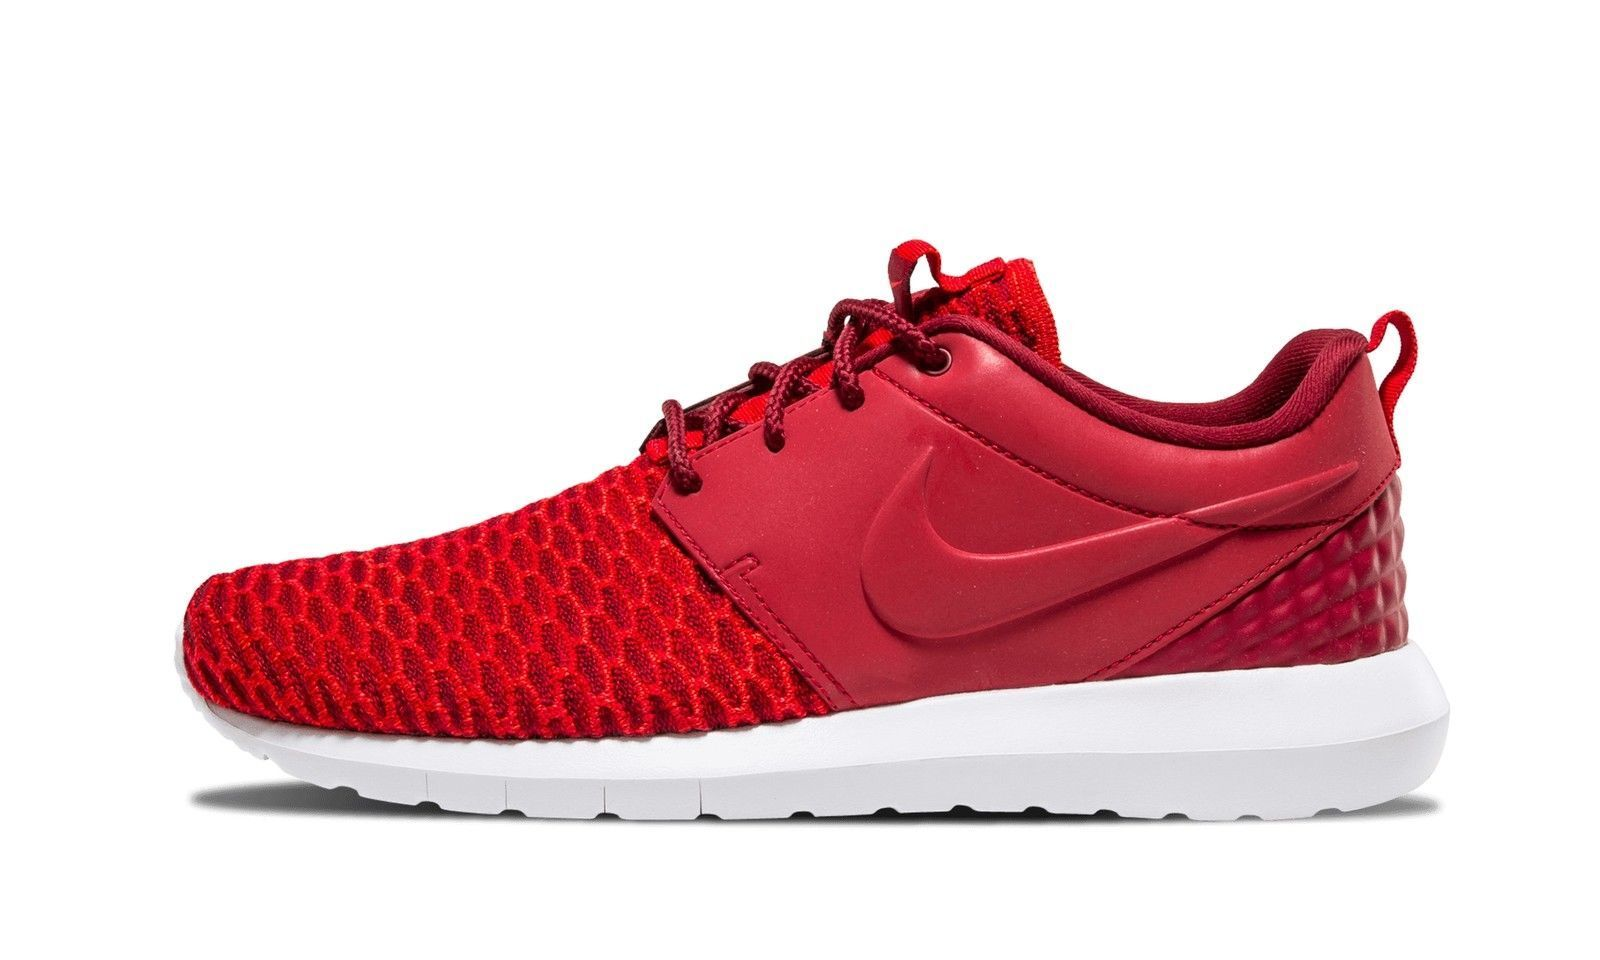 Men's Nike 9 Roshe NM Flyknit Size 9 Nike Shoes Gym/Team Red/Bright Crimson 746825 NEW 614a46